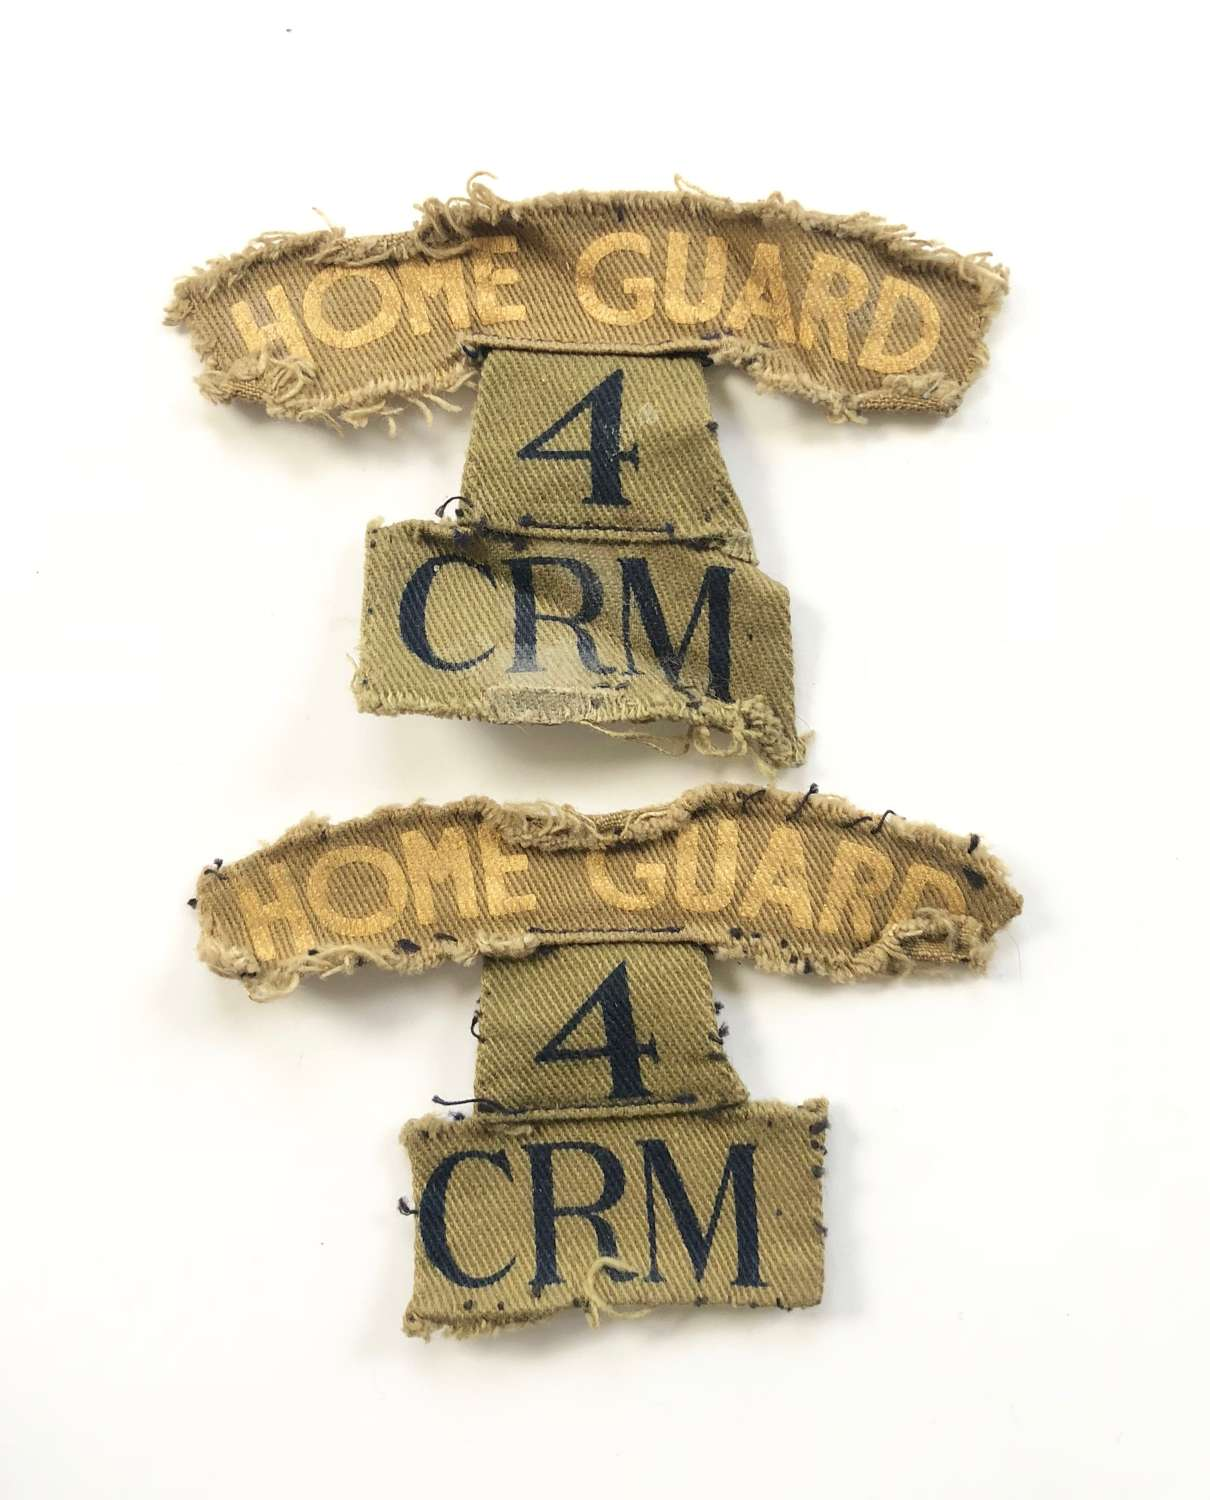 WW2 CARMARTHENSHIRE Llandilo Home Guard Pair of Title Badges